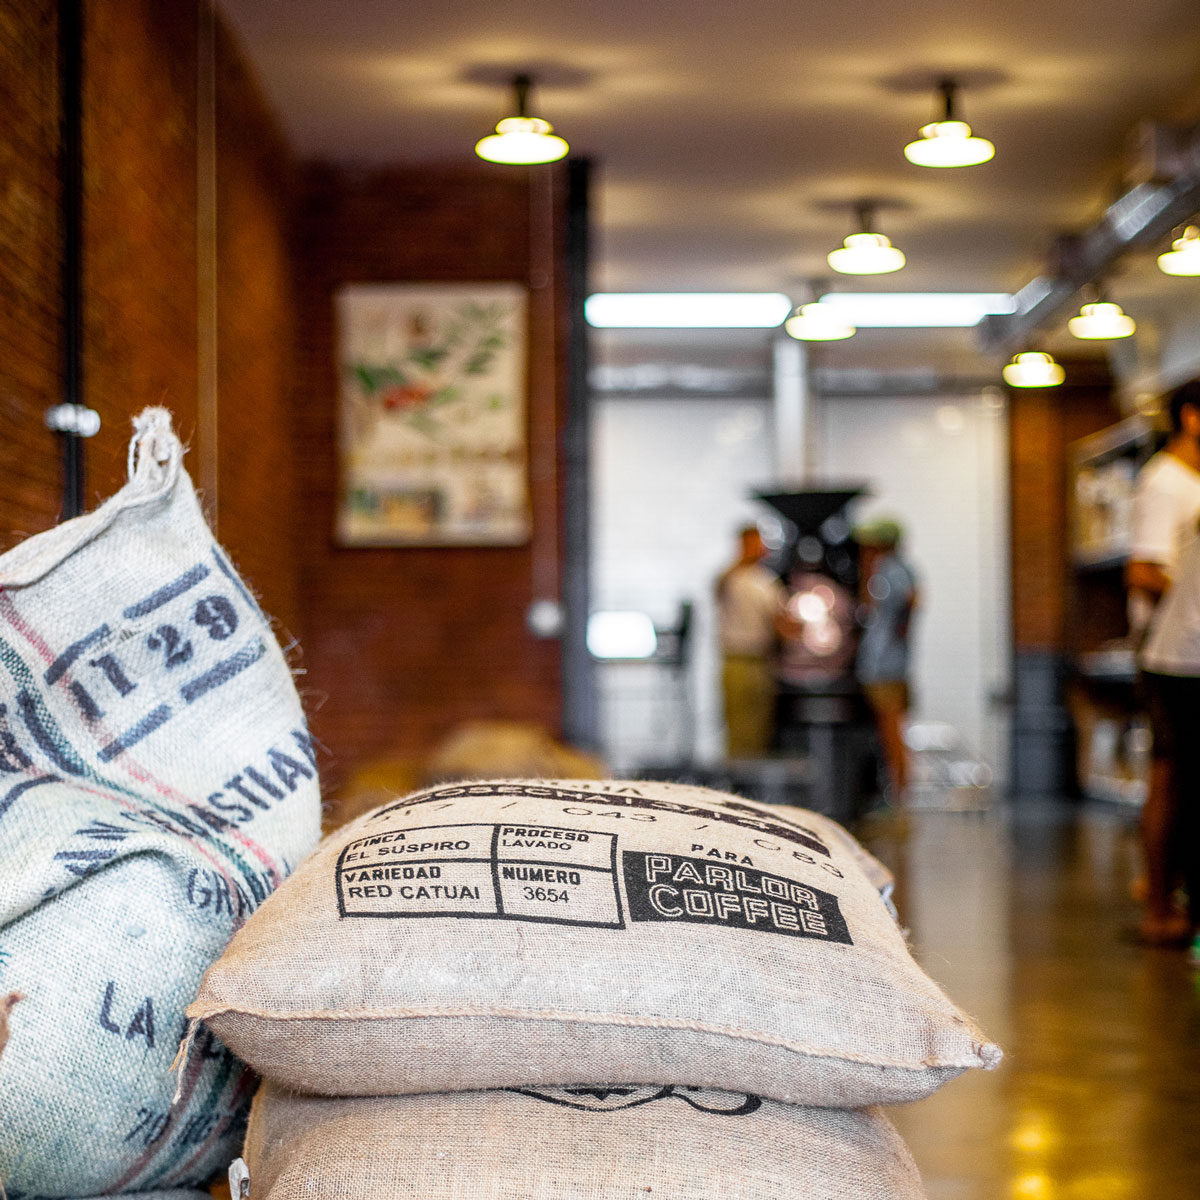 ParlorCoffee_Bags&Roaster